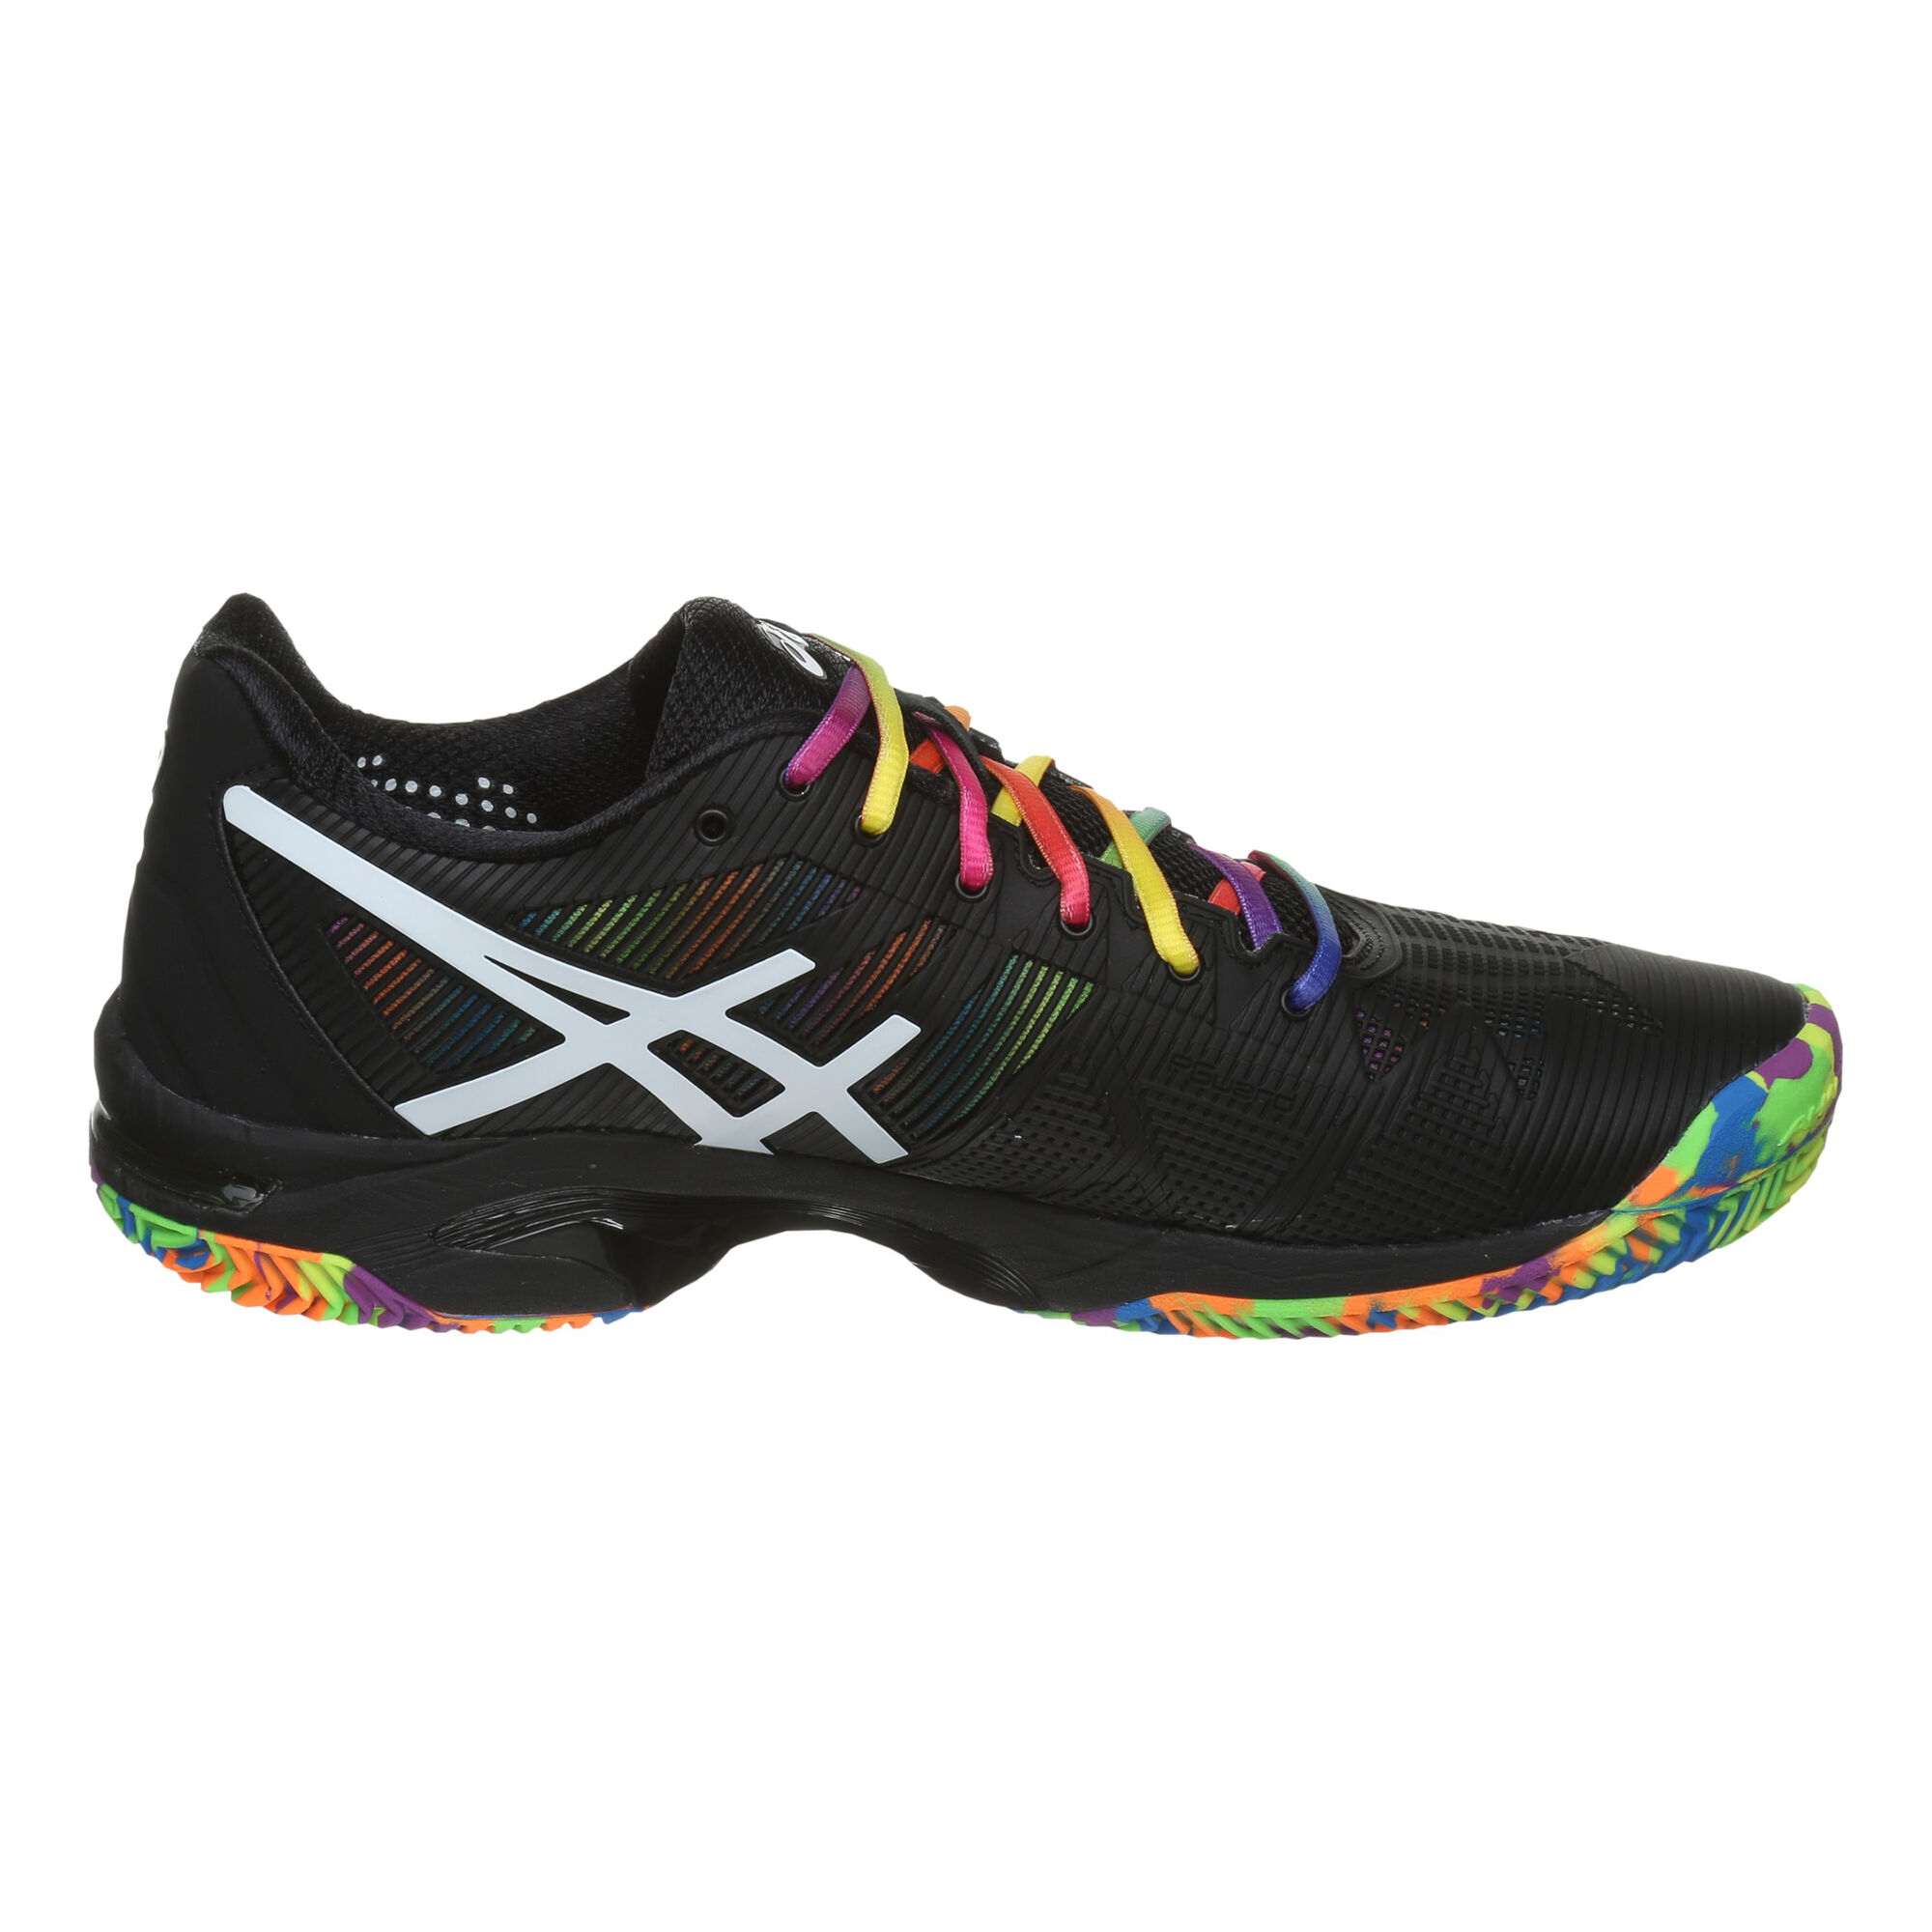 037d1a776f7 Asics Gel-Solution Speed 3 Clay Obuv Na Antuku Special Edition Muži ...